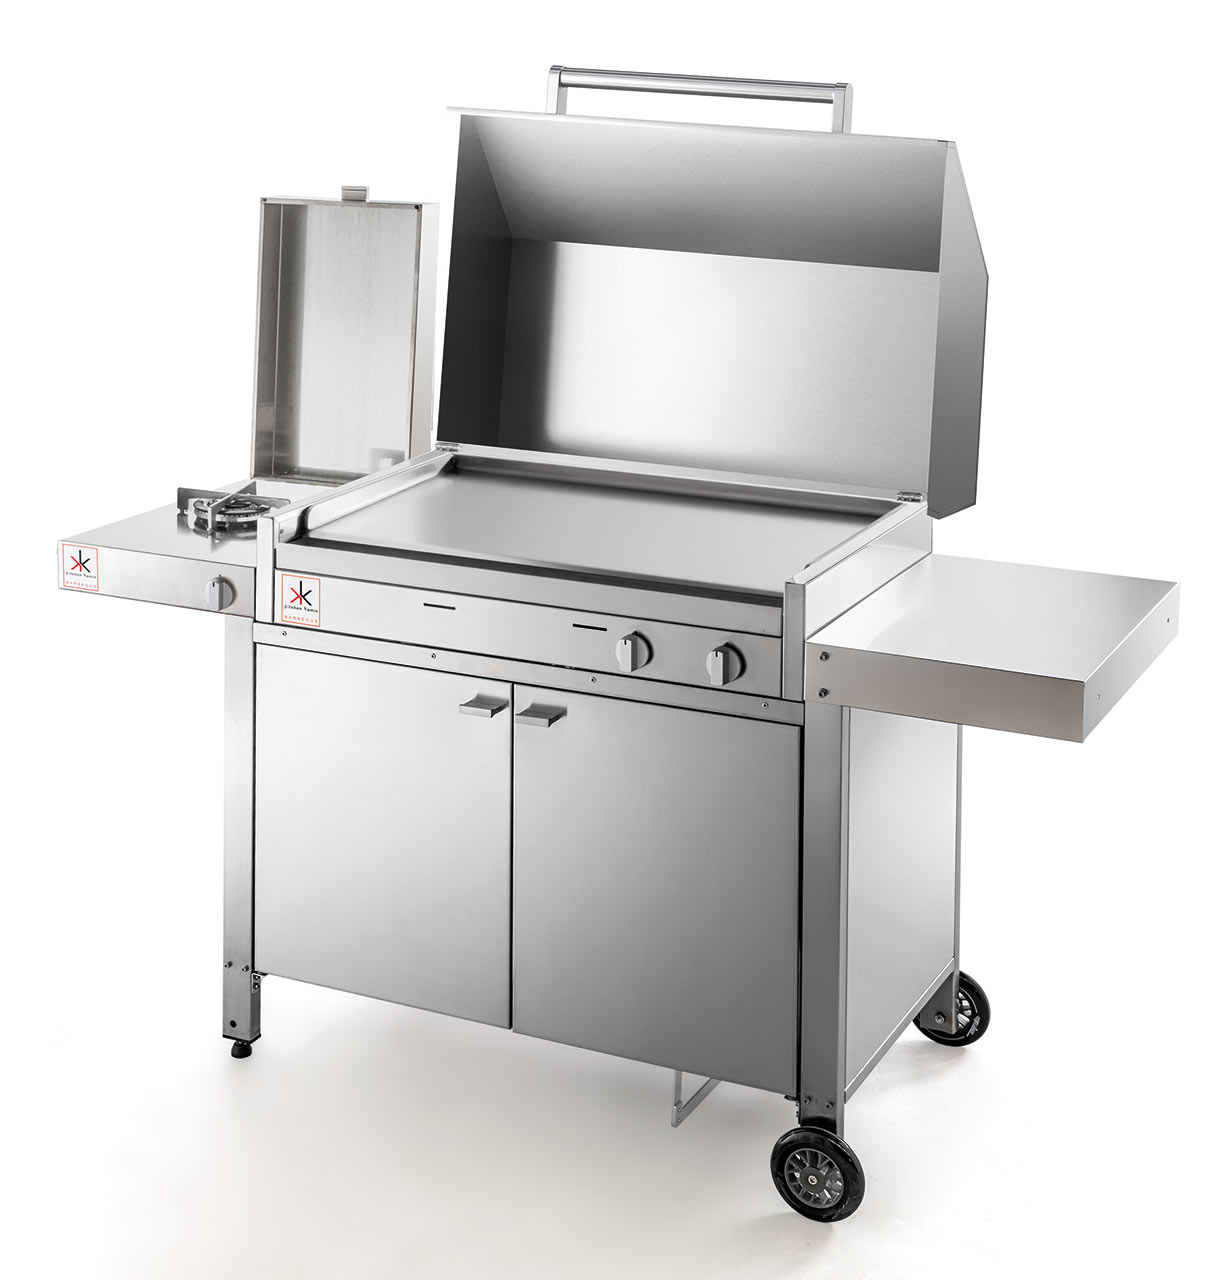 Kitchen Kamin, barbecue BC80